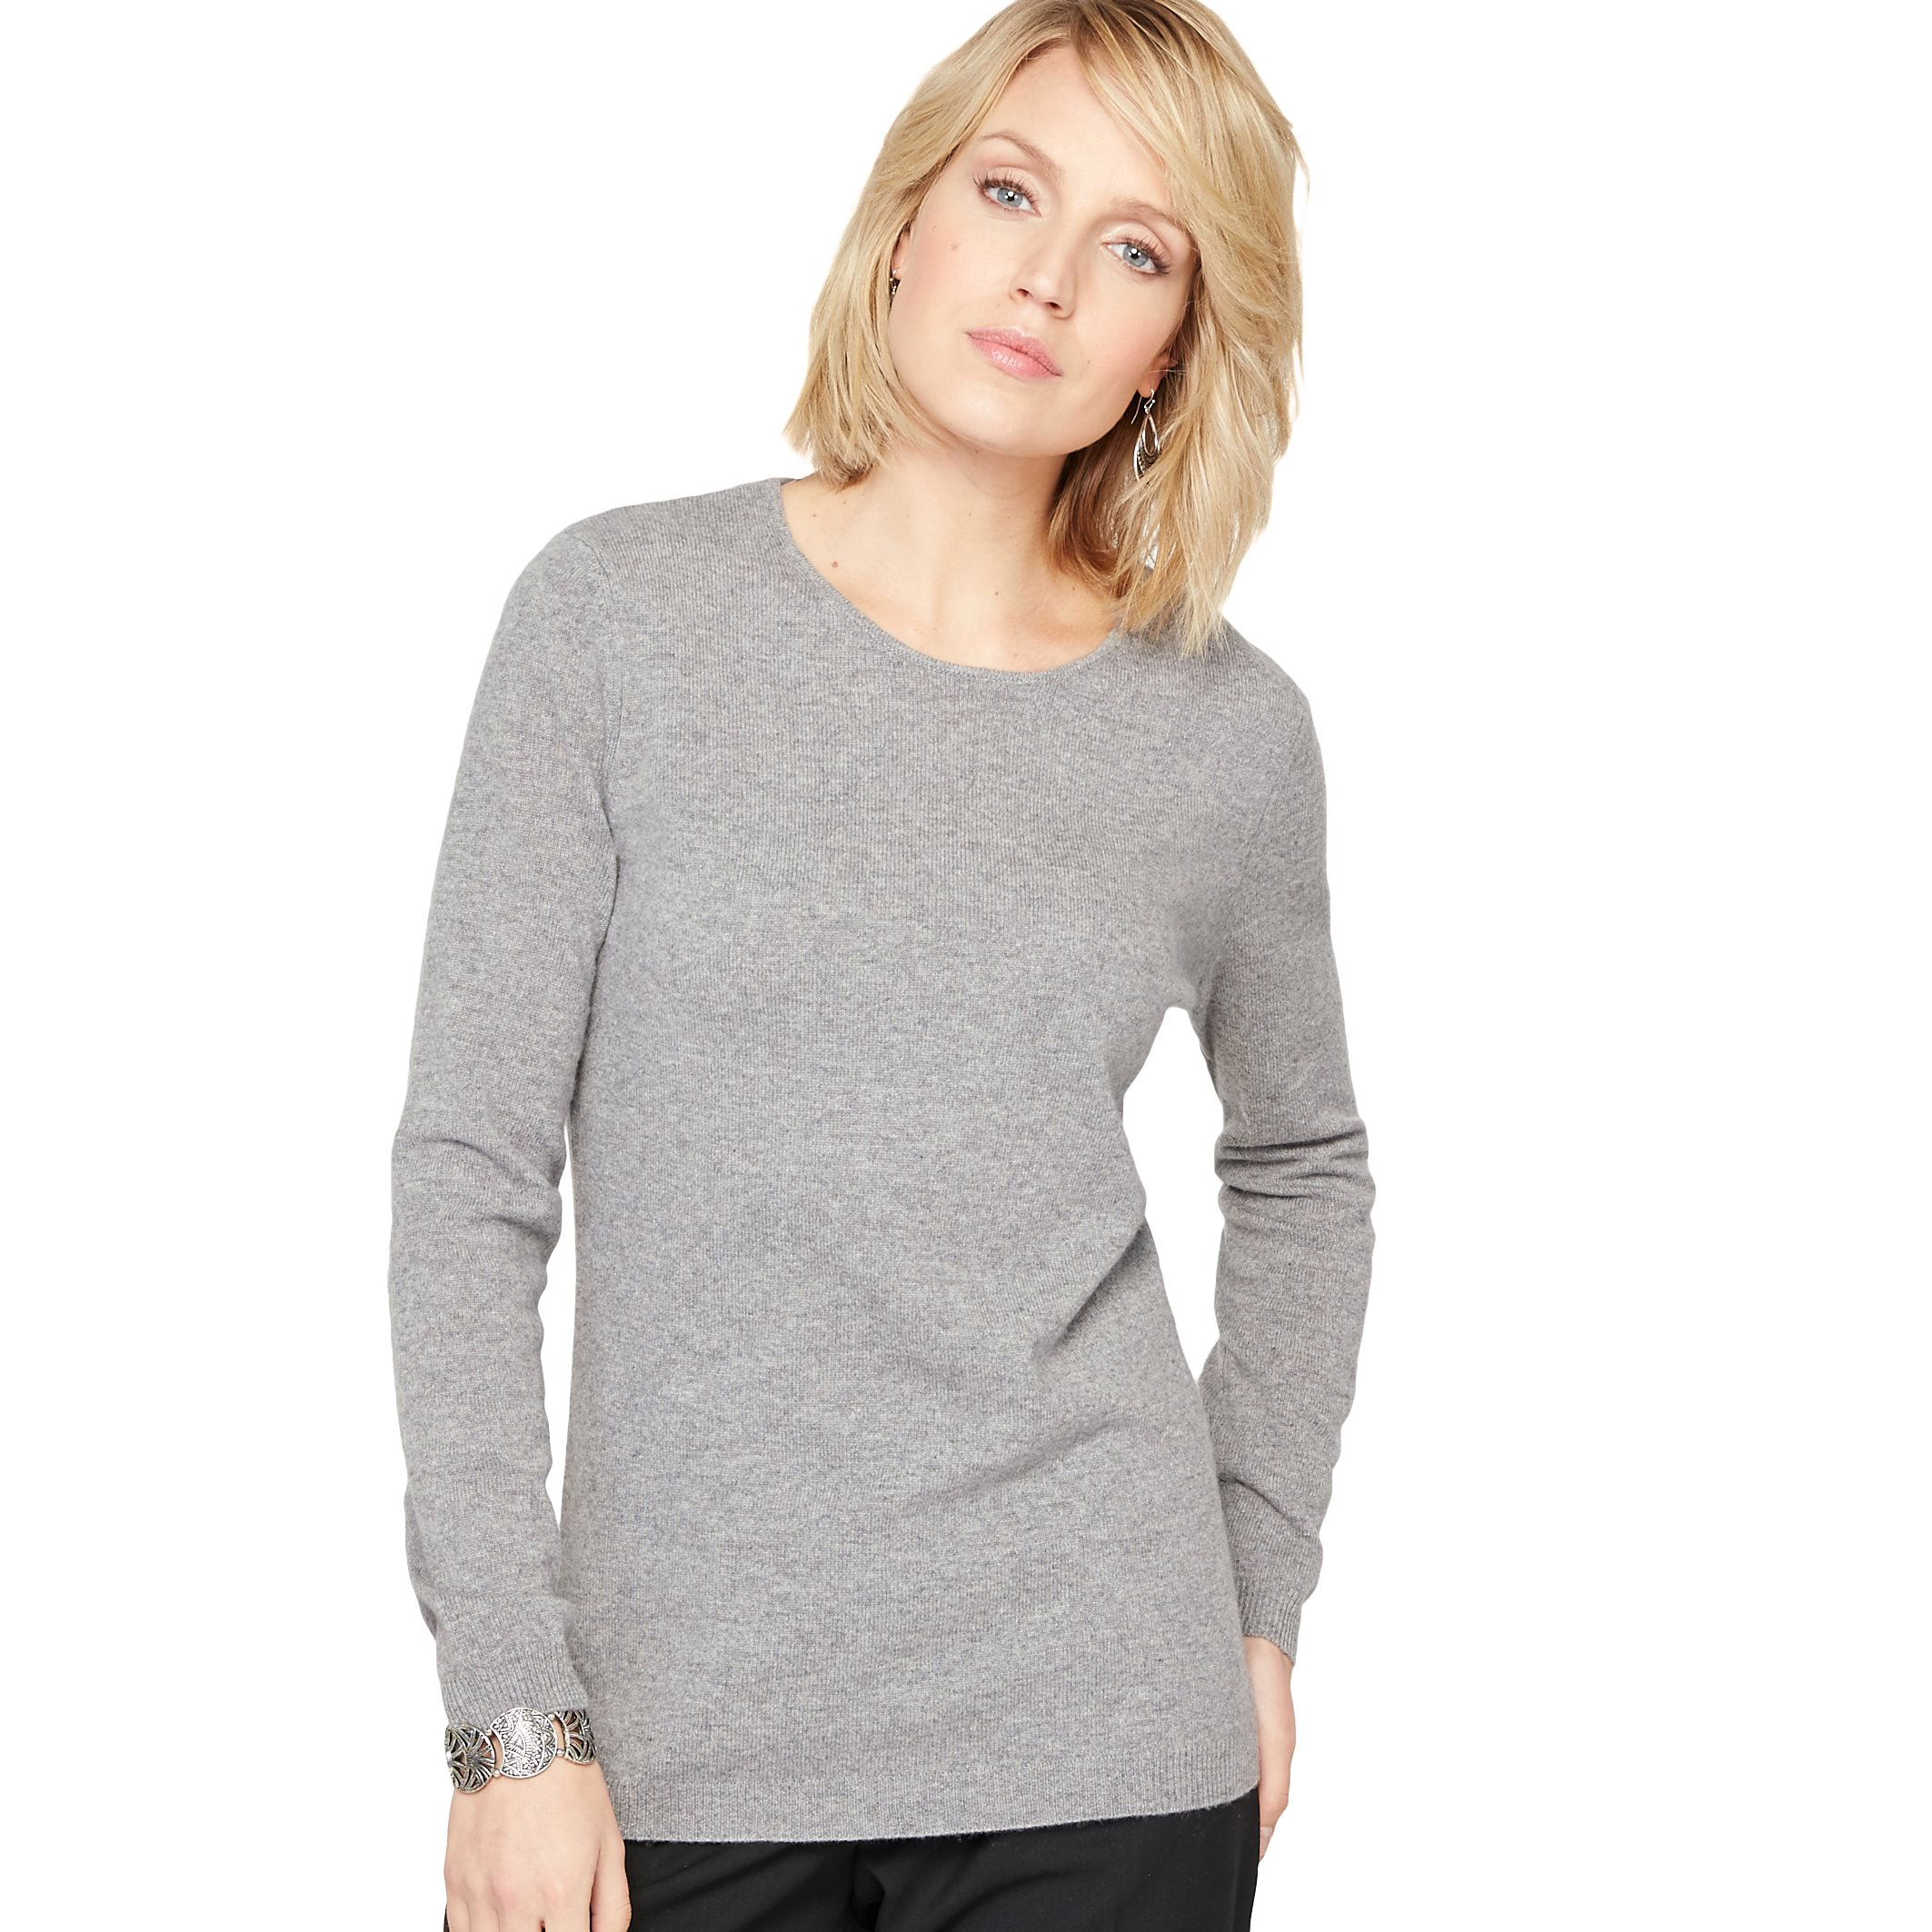 La Redoute Womens Fine Gauge Cashmere Knit Jumper/Sweater Grey Size Us 20/22 - Fr 50/52